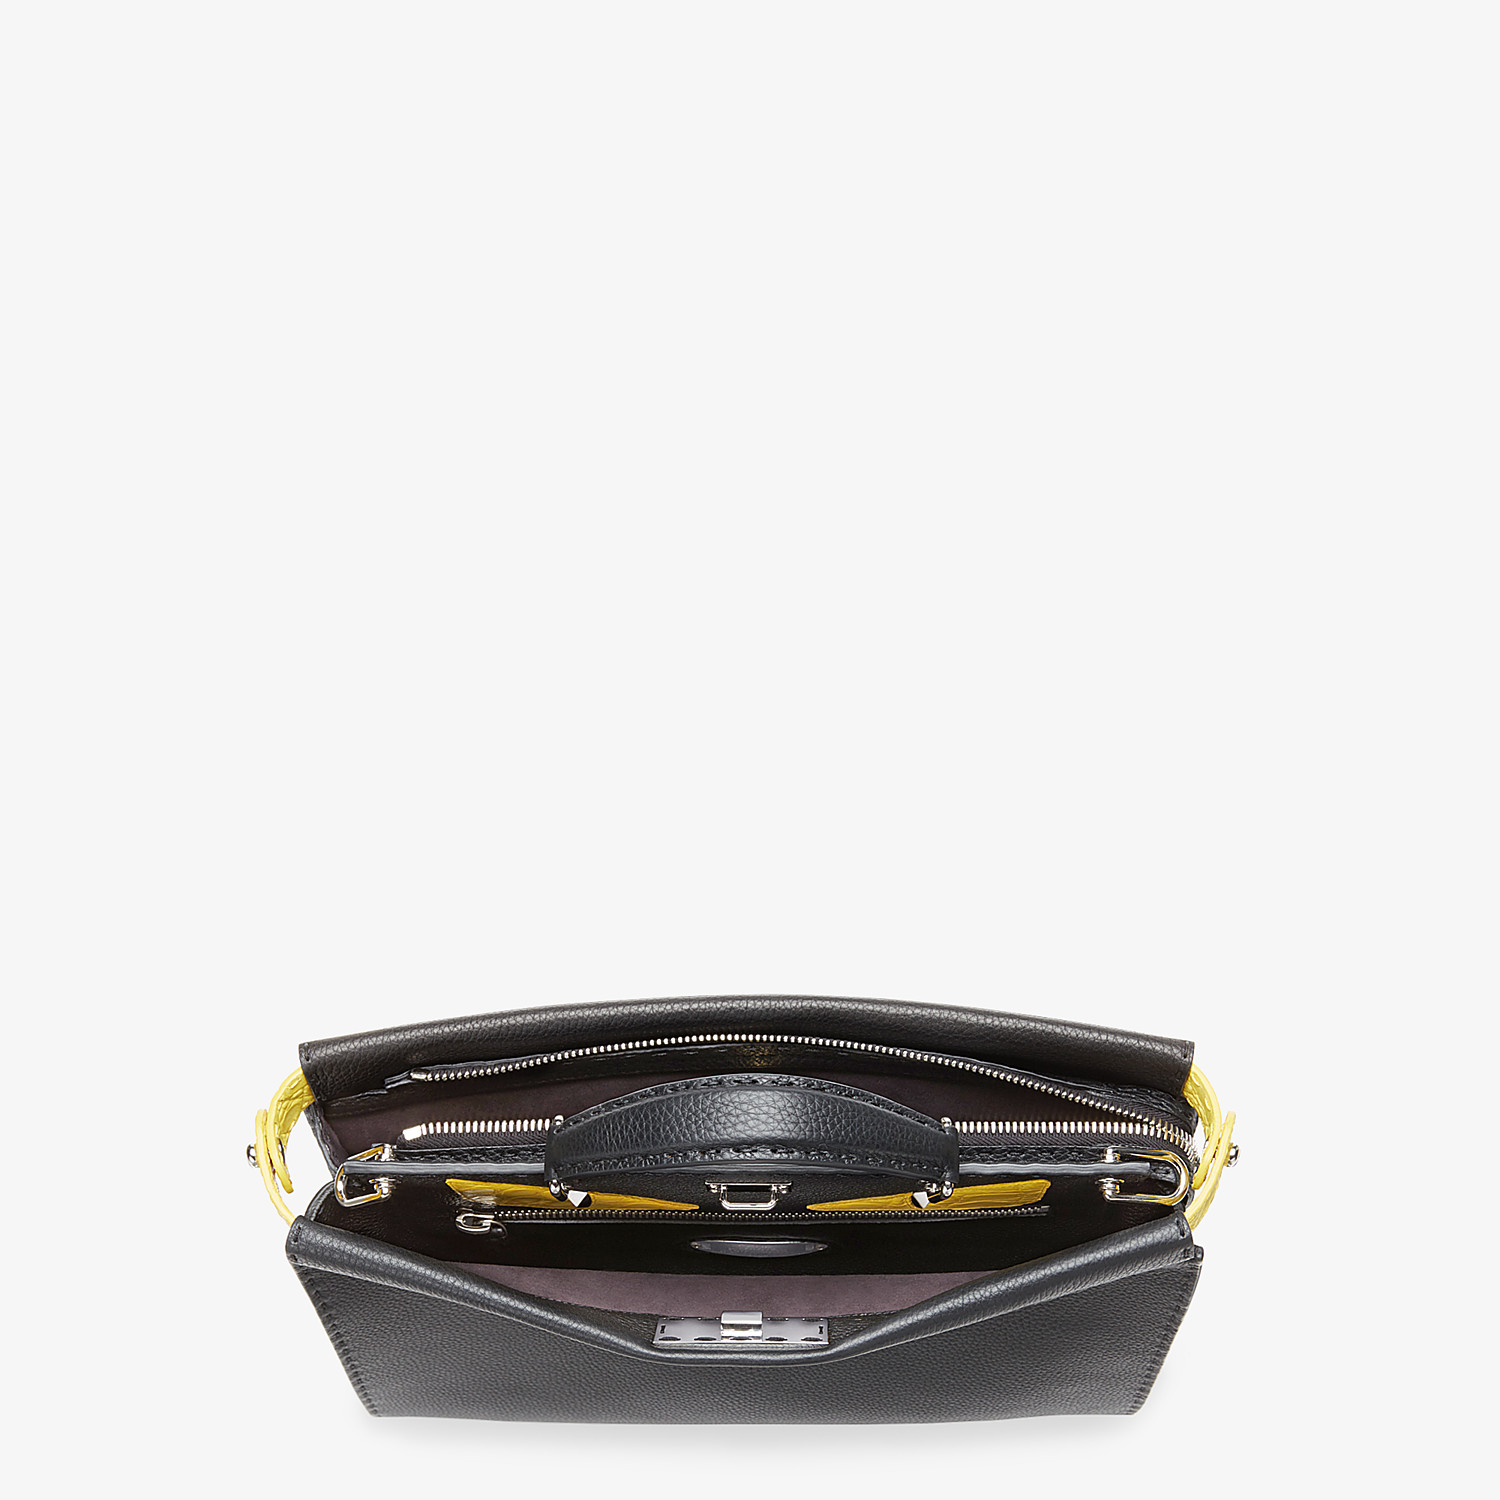 FENDI PEEKABOO ICONIC FIT - Black leather bag - view 4 detail